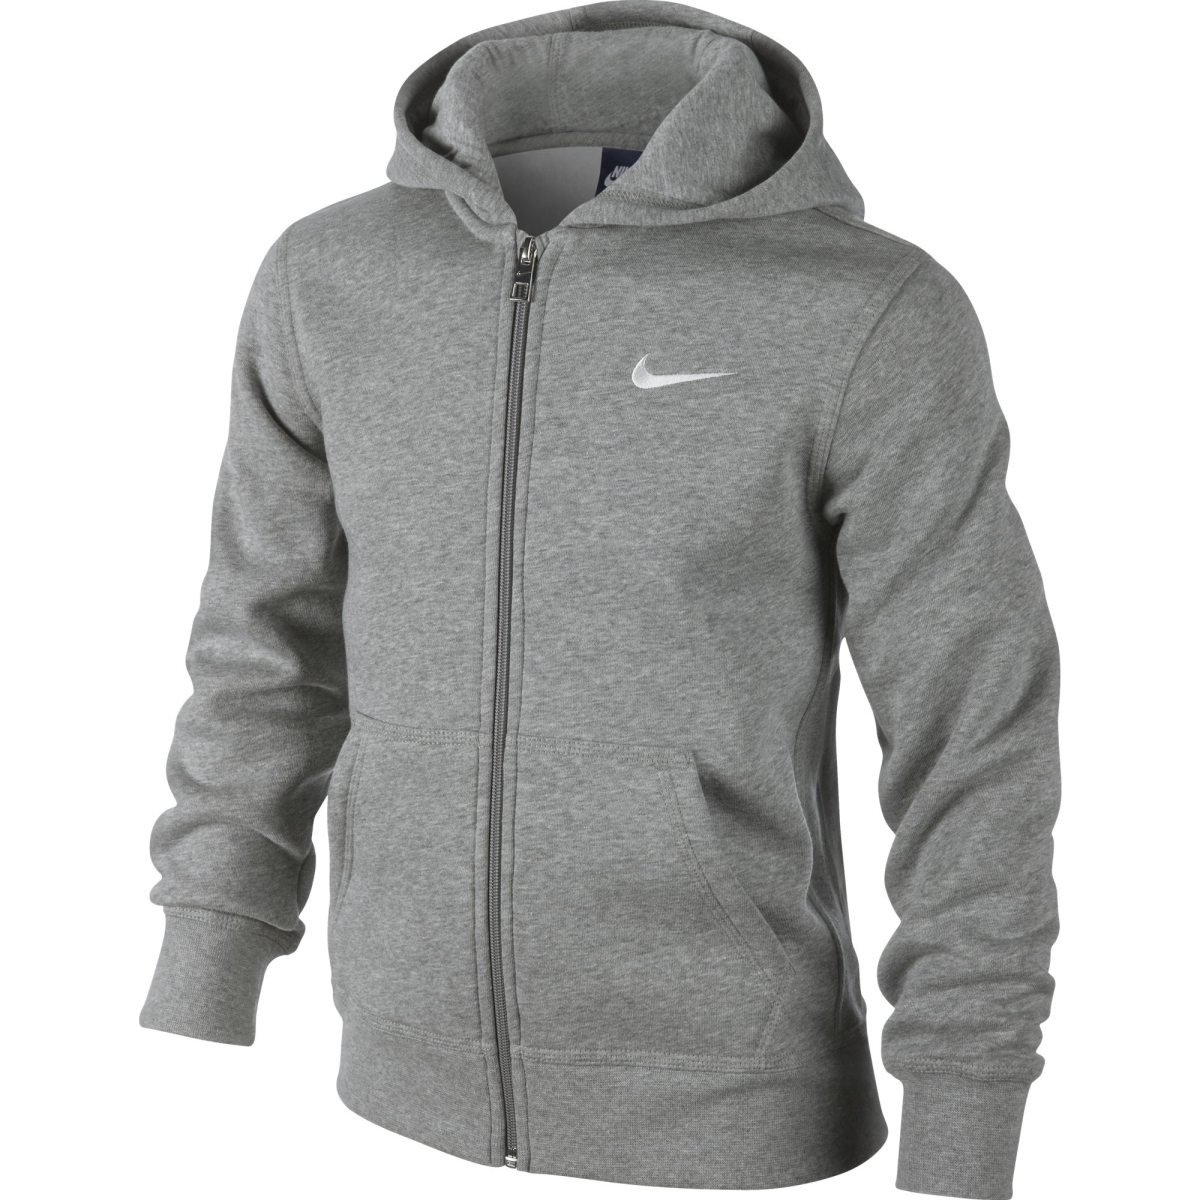 d8d4cfa9 Buy nike hettegenser. Shop every store on the internet via PricePi.com